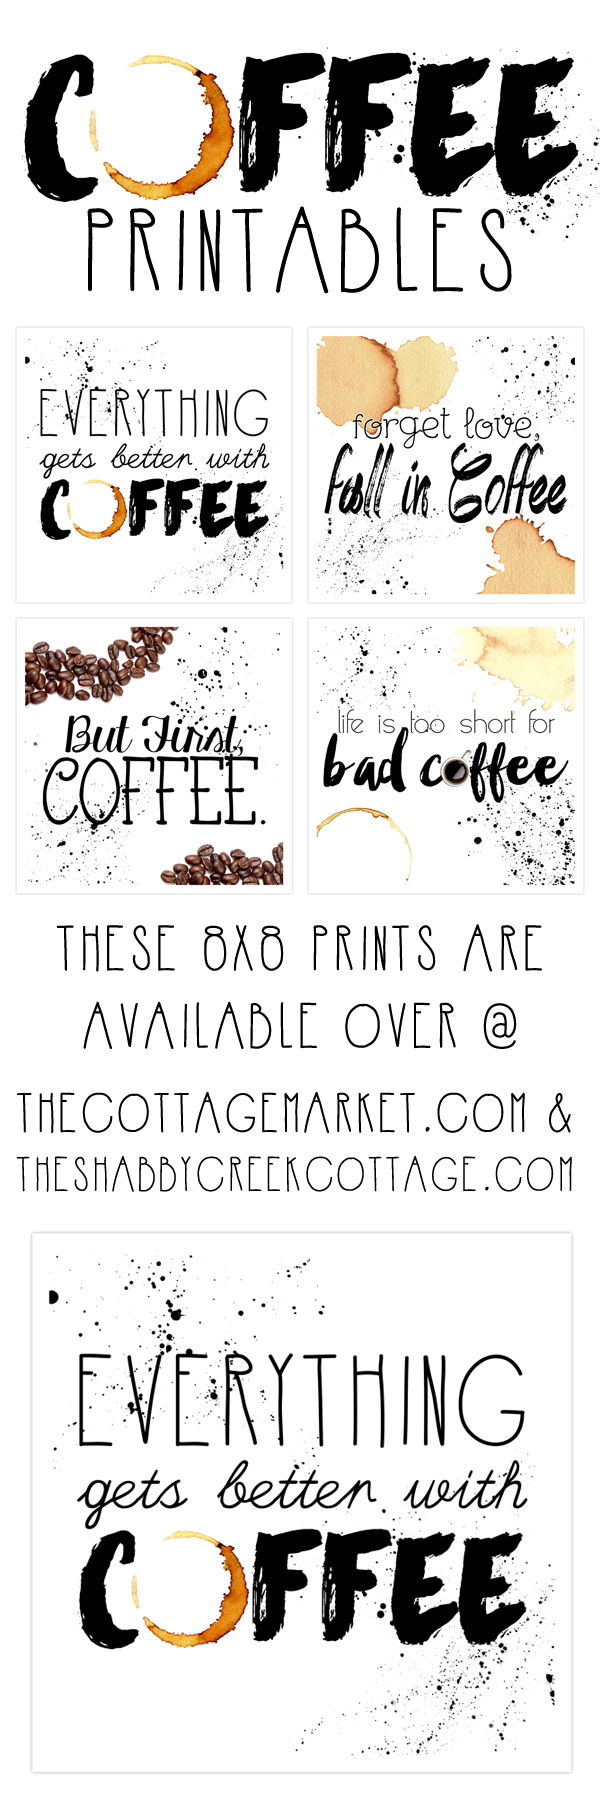 Free Printable Art: The Coffee Collection - The Cottage Market - Free Coffee Printable Art